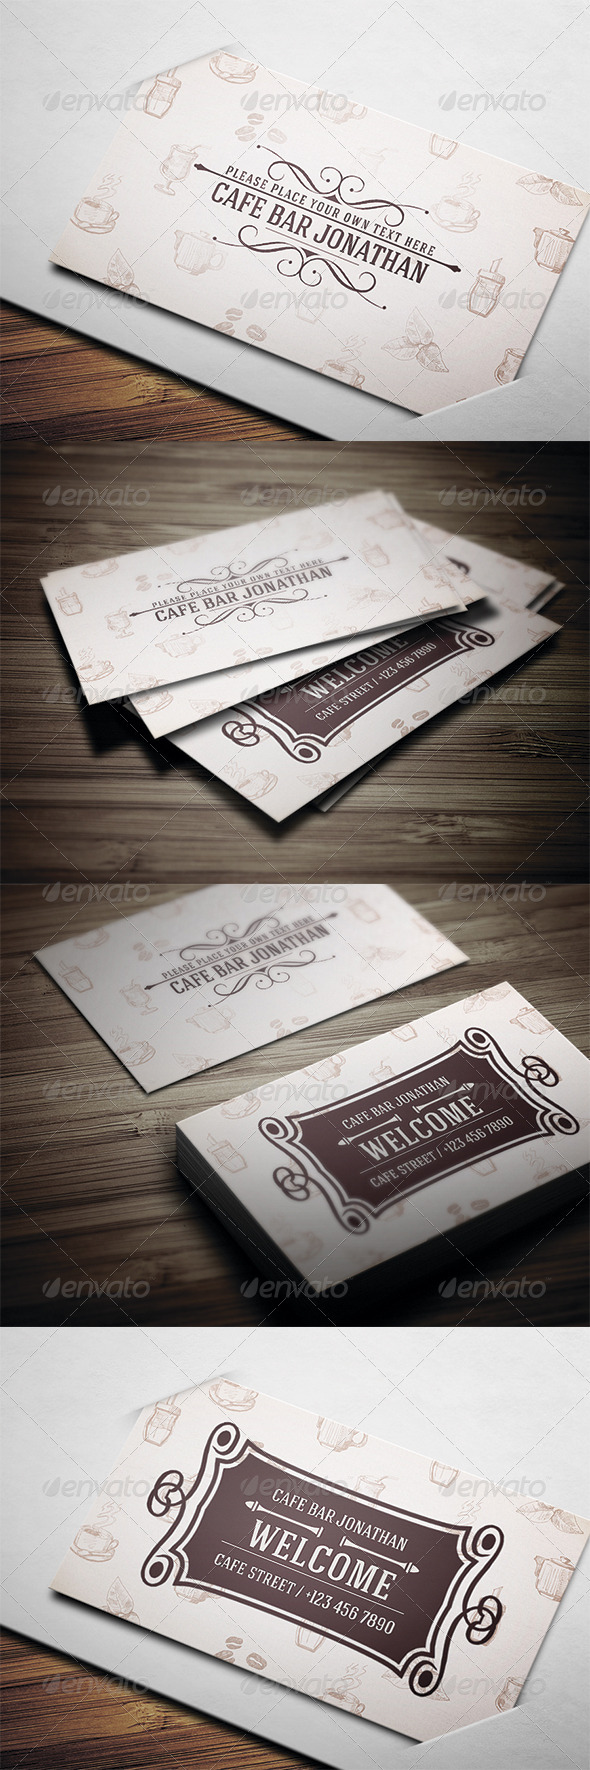 Cafe Business Card - Creative Business Cards